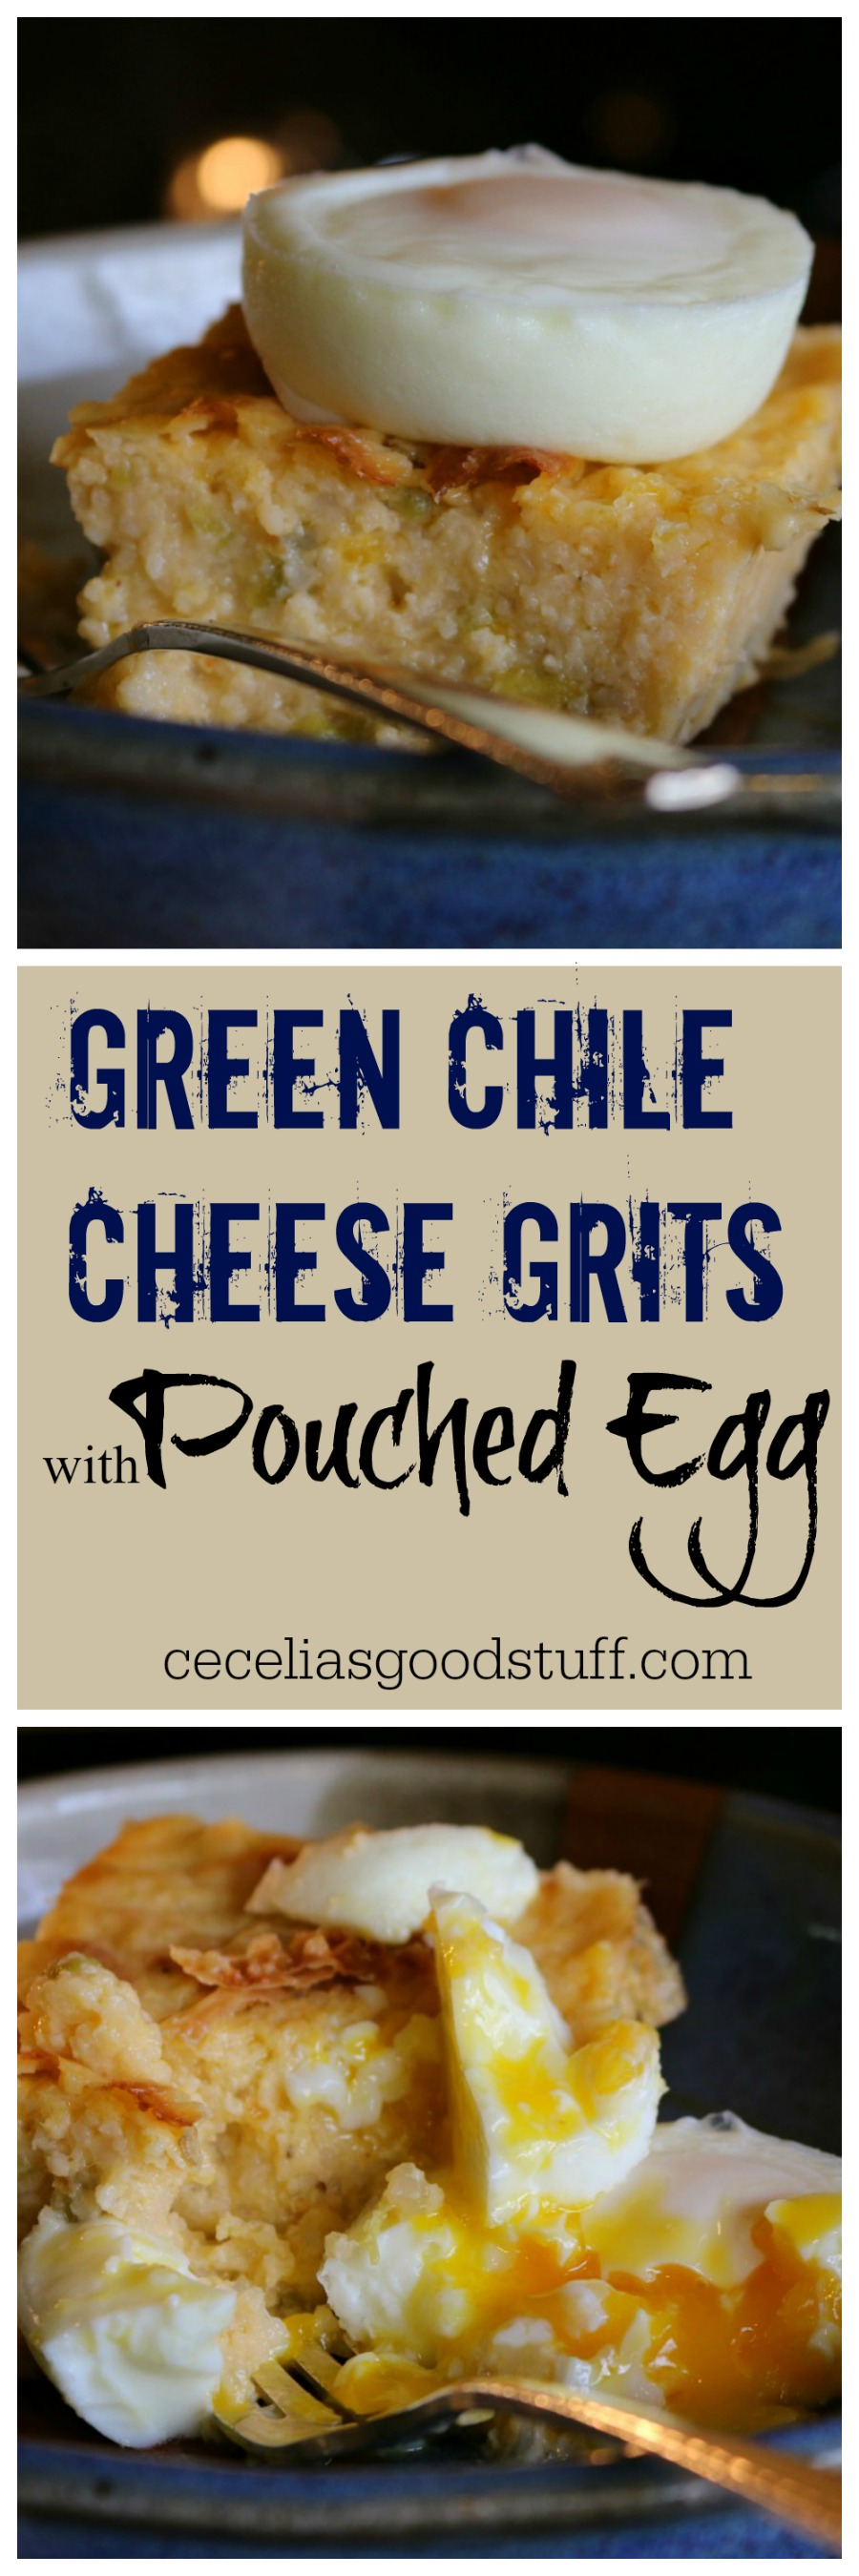 Recipe for Green Chile Cheese Grits with a Poached Egg